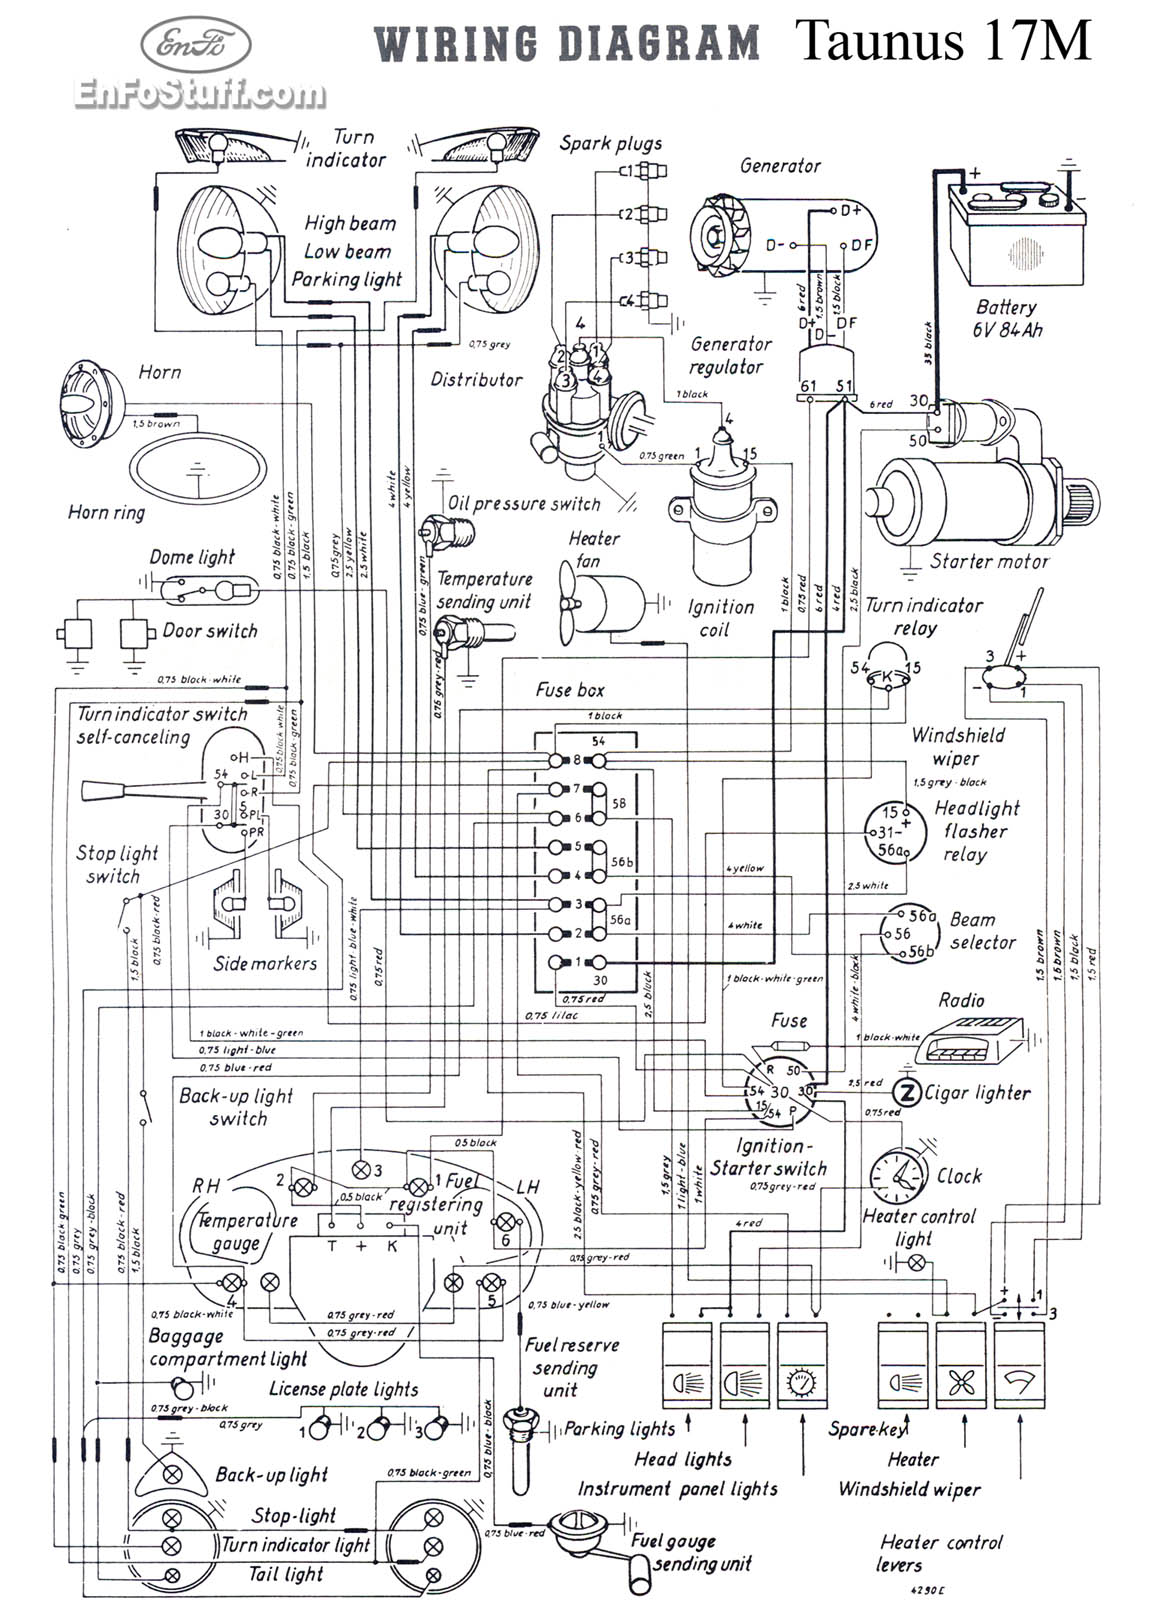 1974 vw super beetle engine diagram  1974  get free image